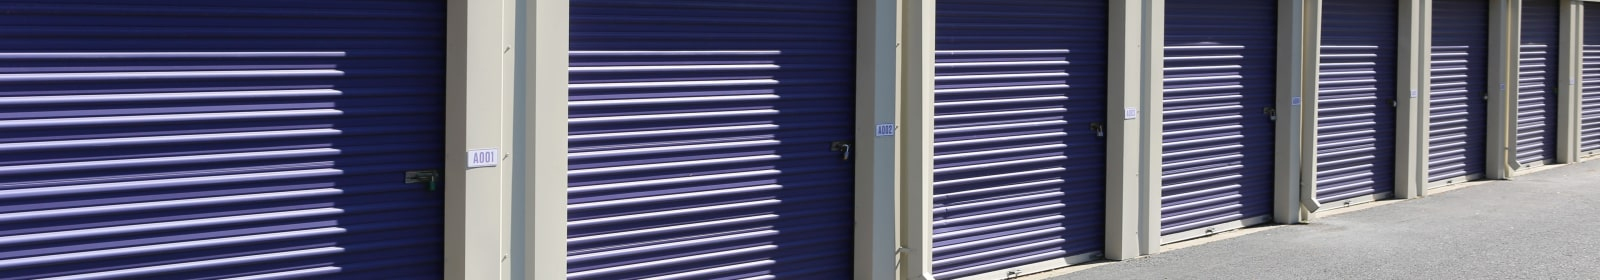 Self storage solutions in Key West, Florida